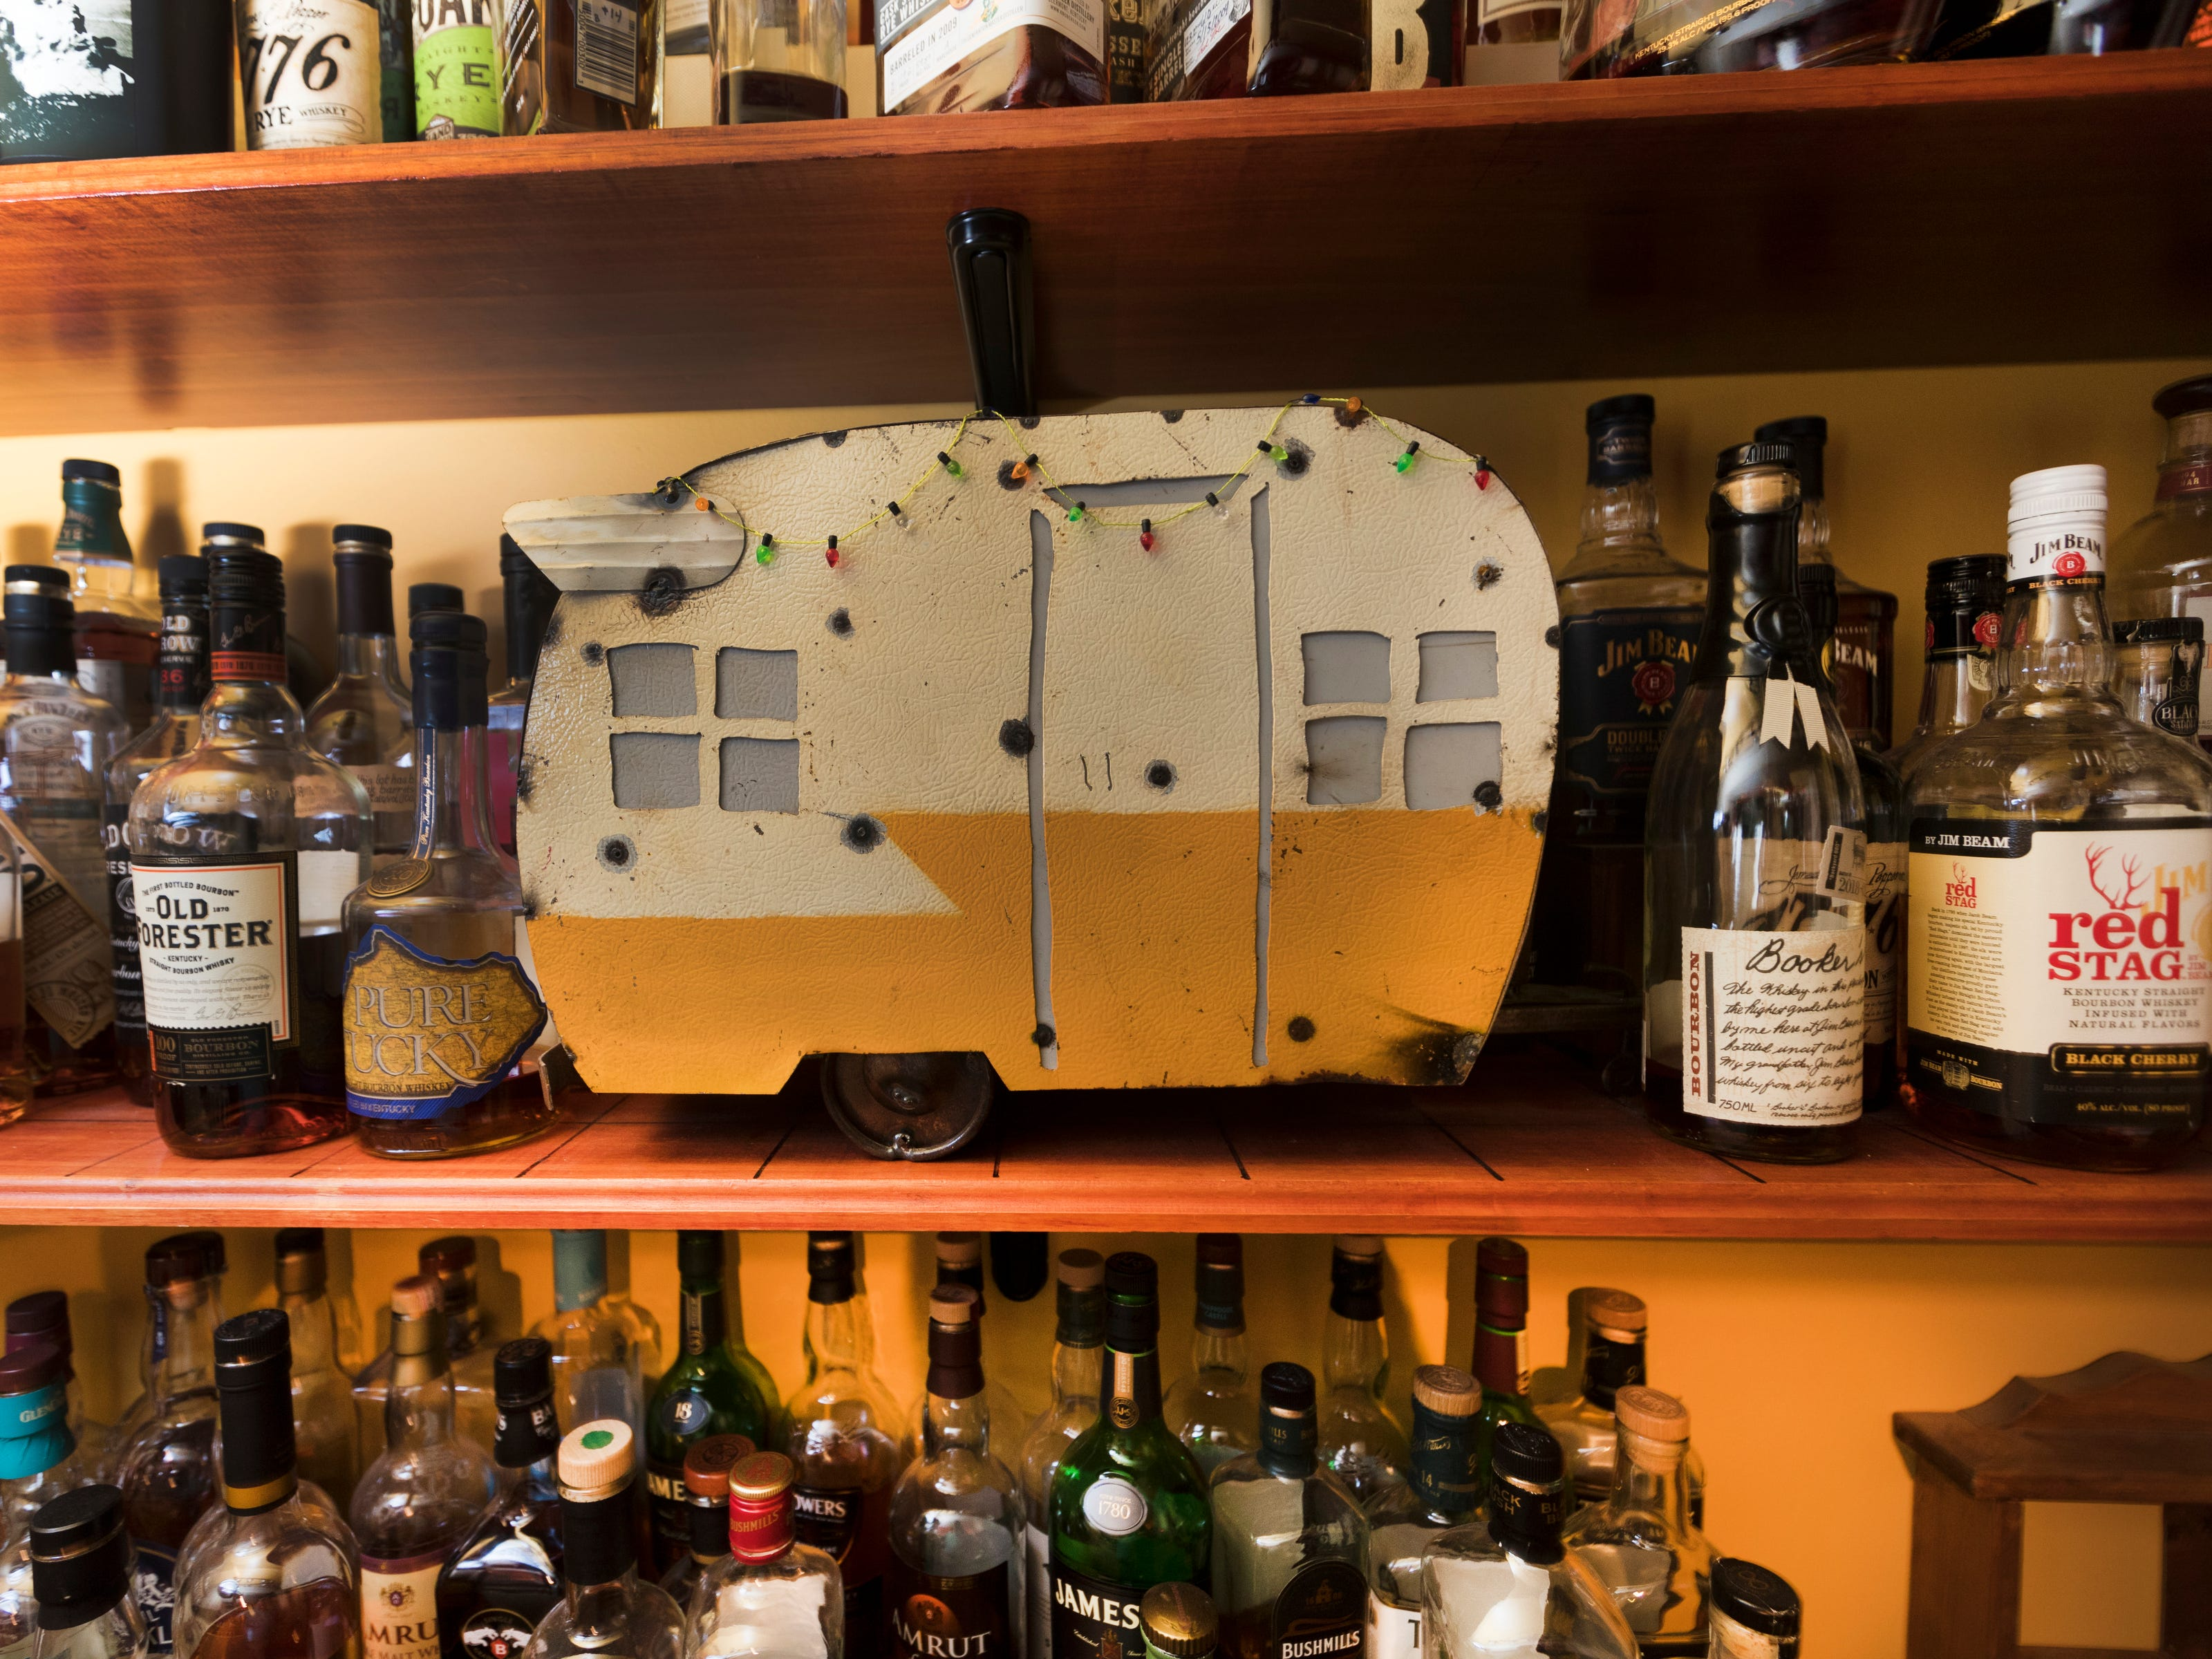 A model travel trailer is shown Tuesday, April 9, 2019 at the soon-to-open Trailer Park Tavern, 2989 S. Kinnickinnic Ave. in Milwaukee, Wis. The bar, owned by Jordon (CQ) Bledsoe, is to open in May.